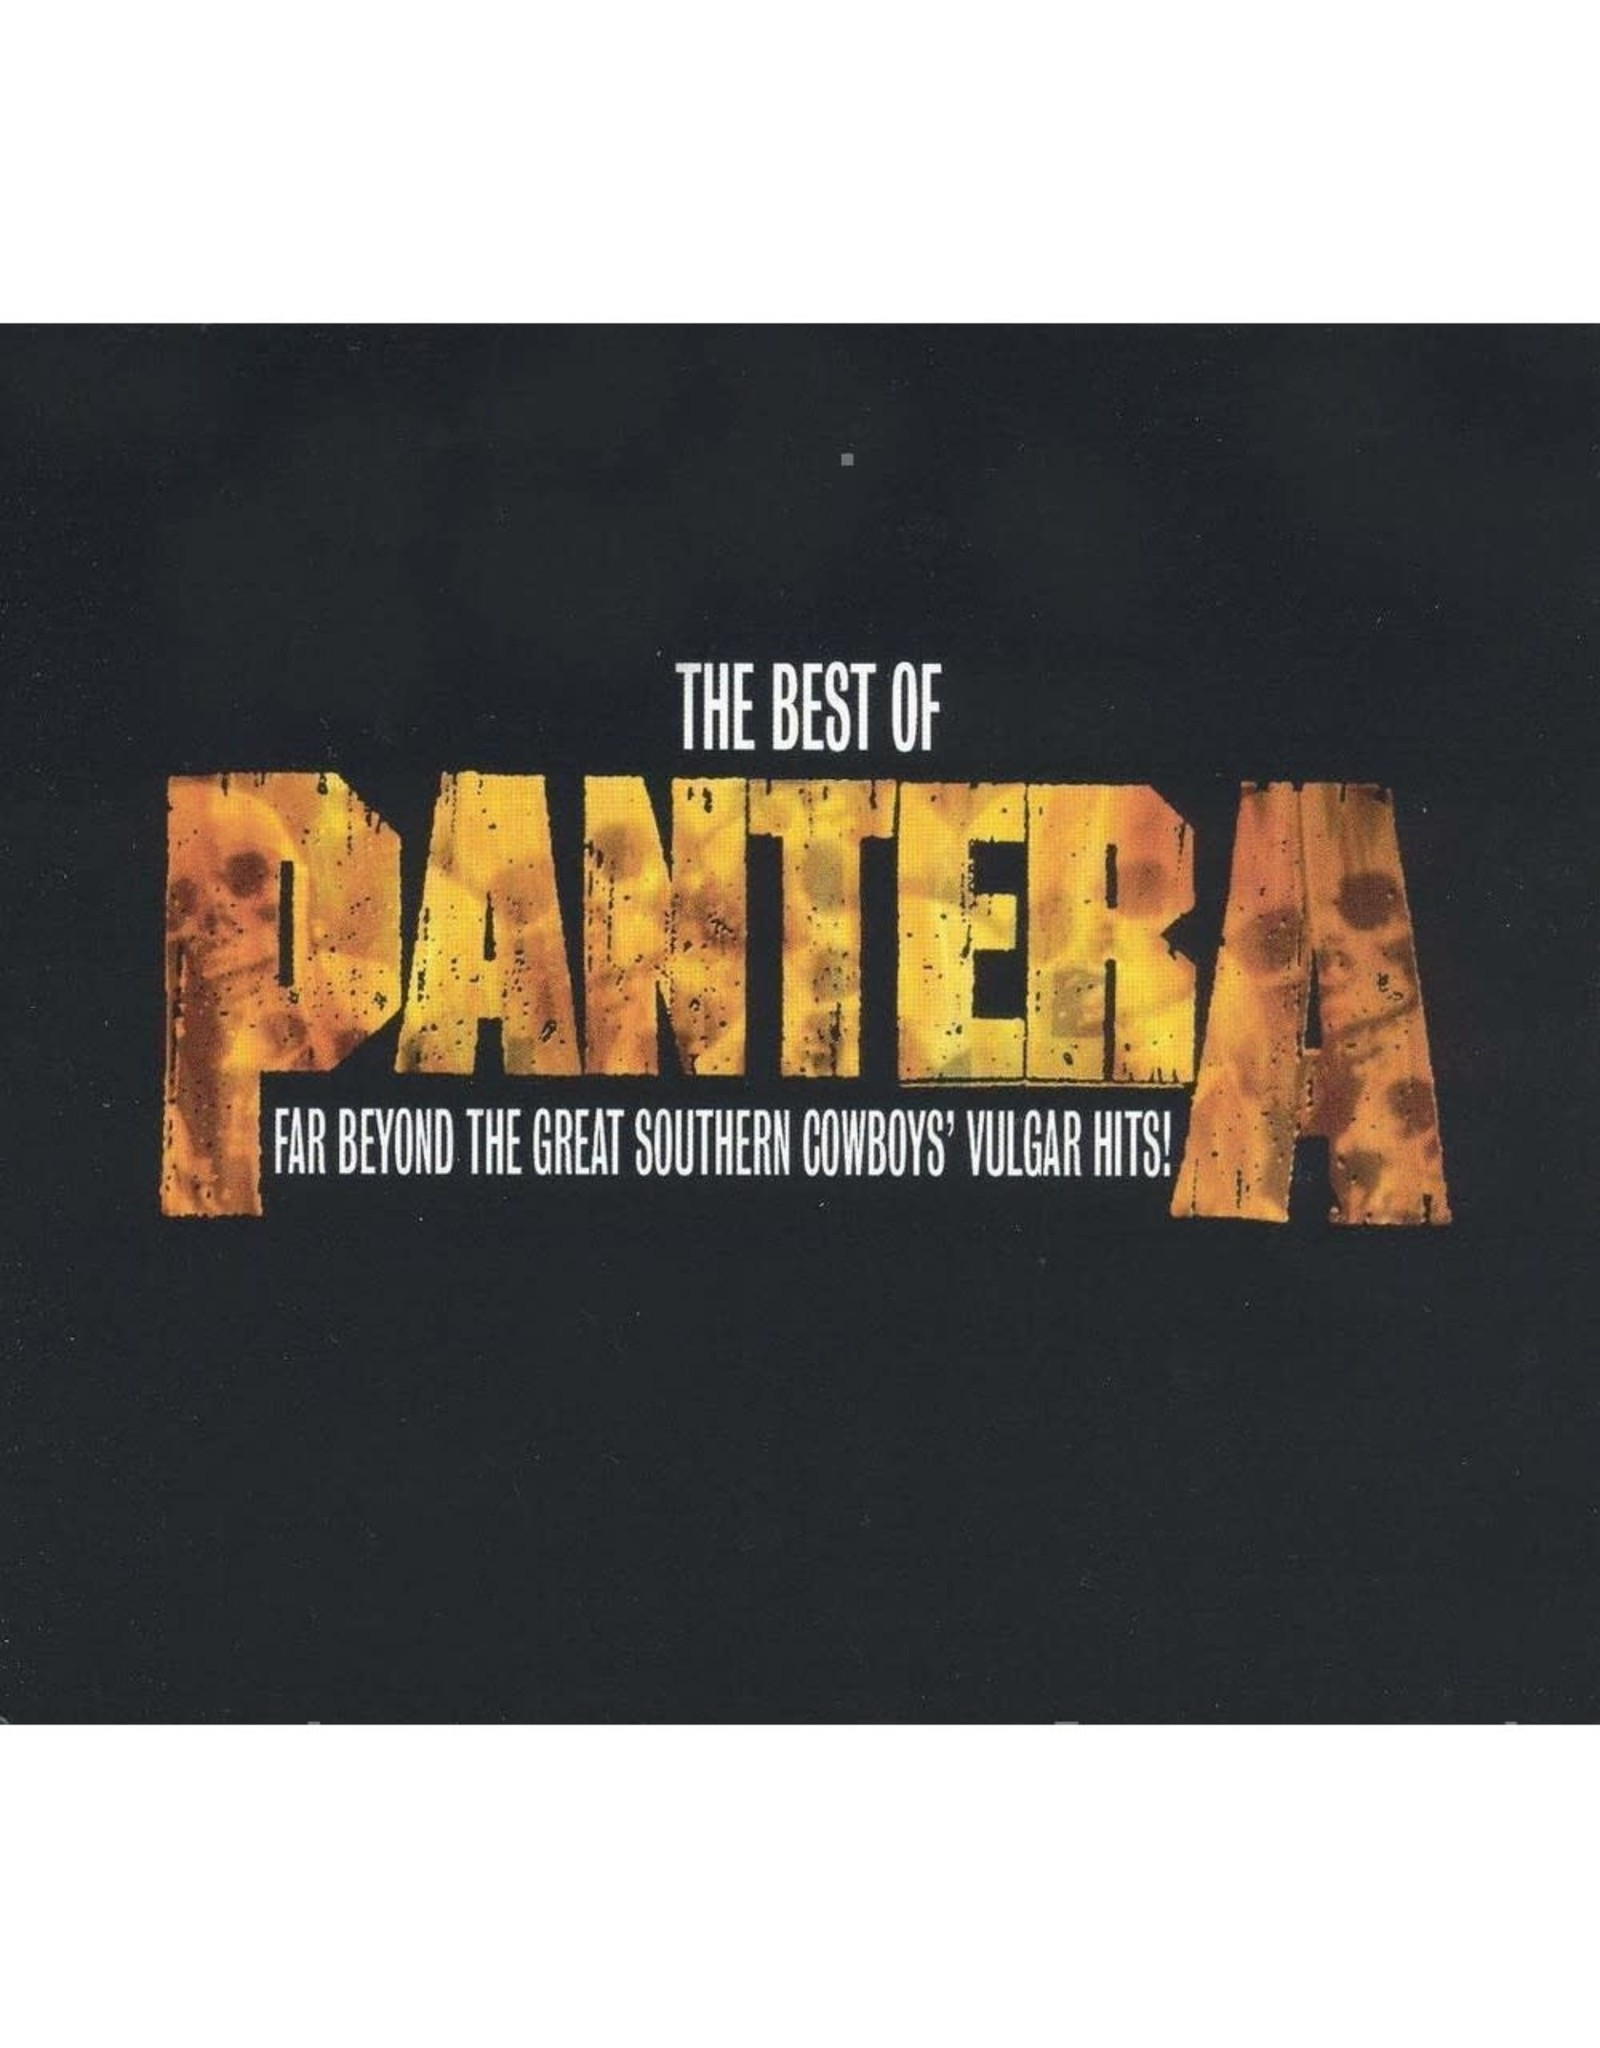 Pantera - The Best Of: Far Beyond the Great Southern Cowboys' Vulgar Hits! CD